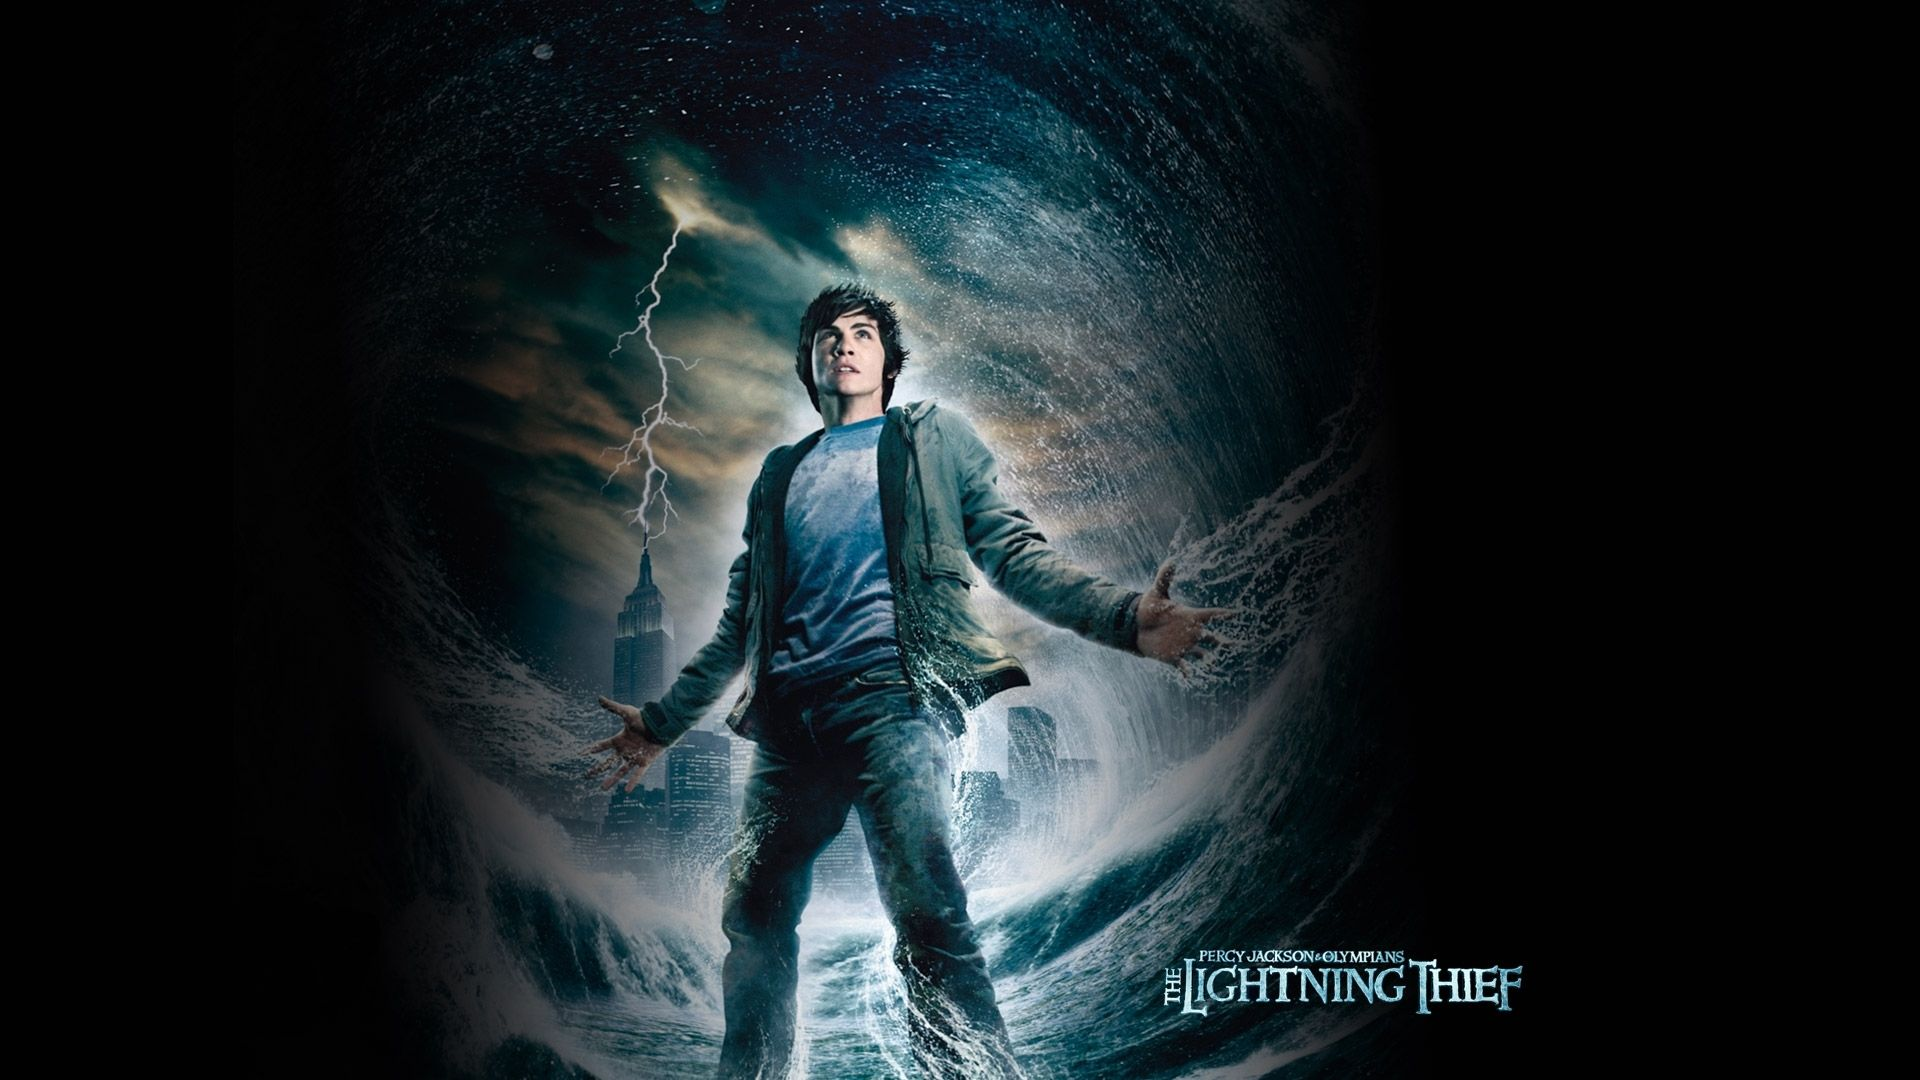 Percy Jackson The Olympians Books Images Last Olympian 1280x720 Wallpaper